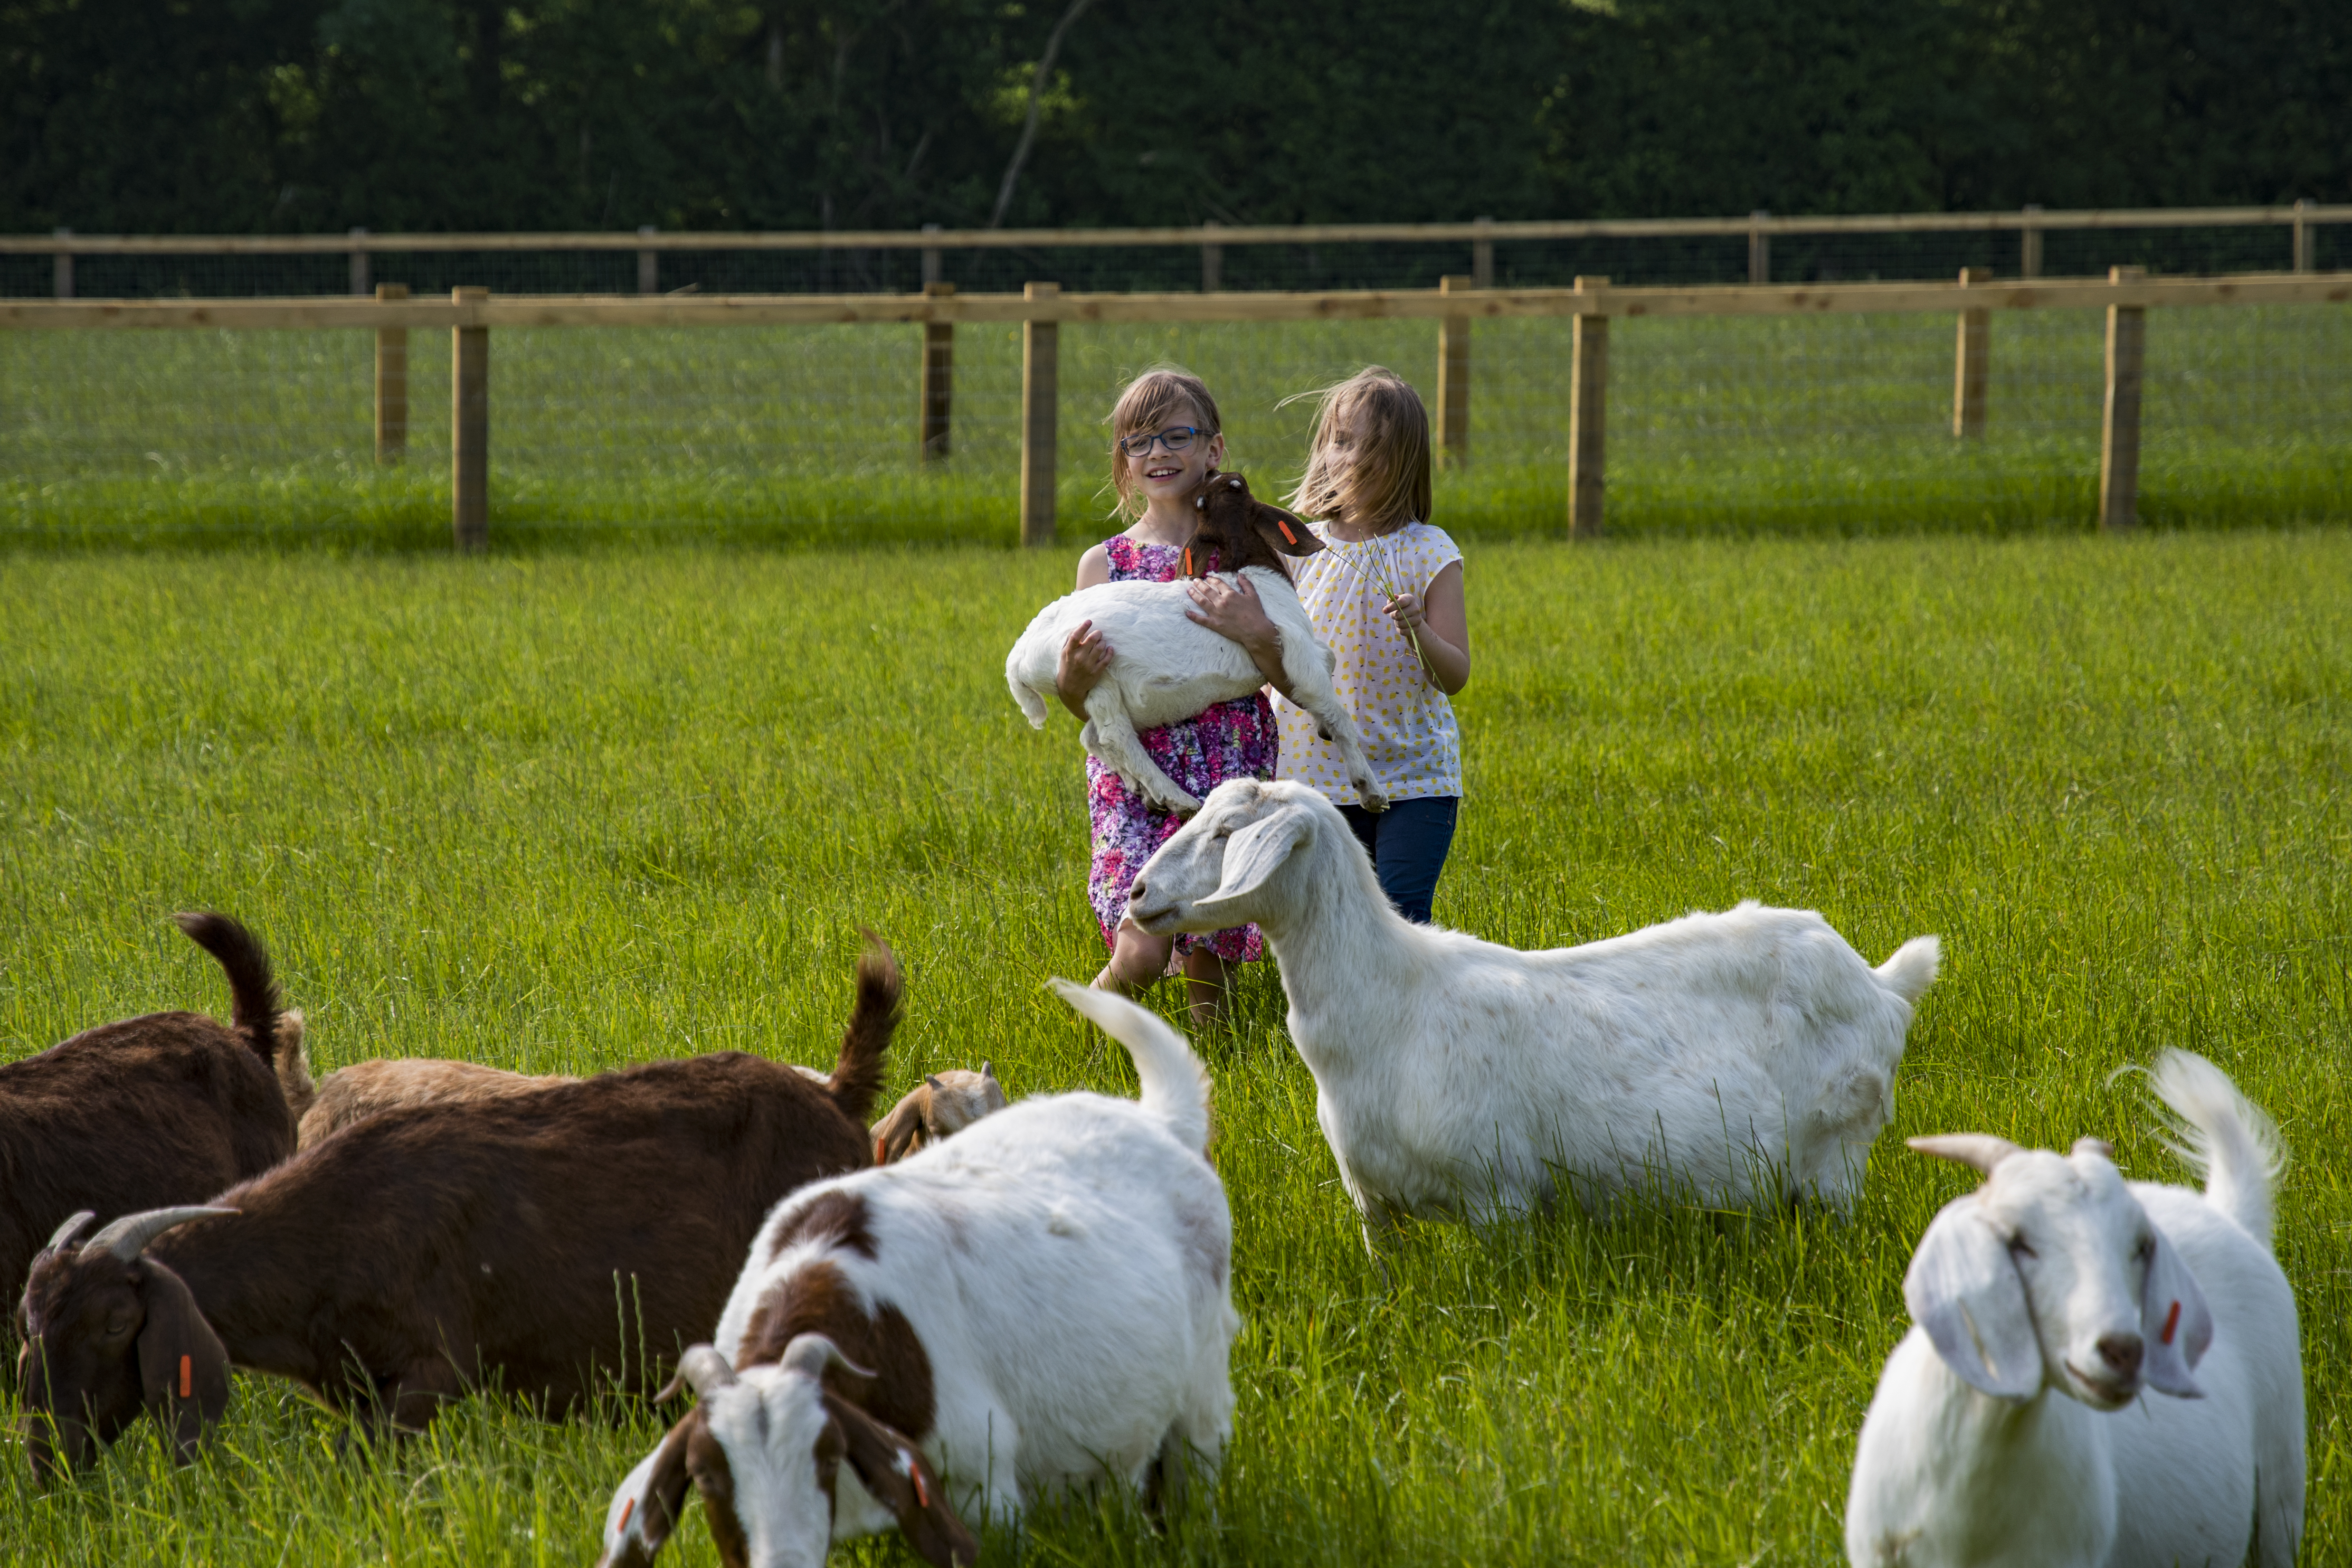 What do 'Meat Goats' look like?